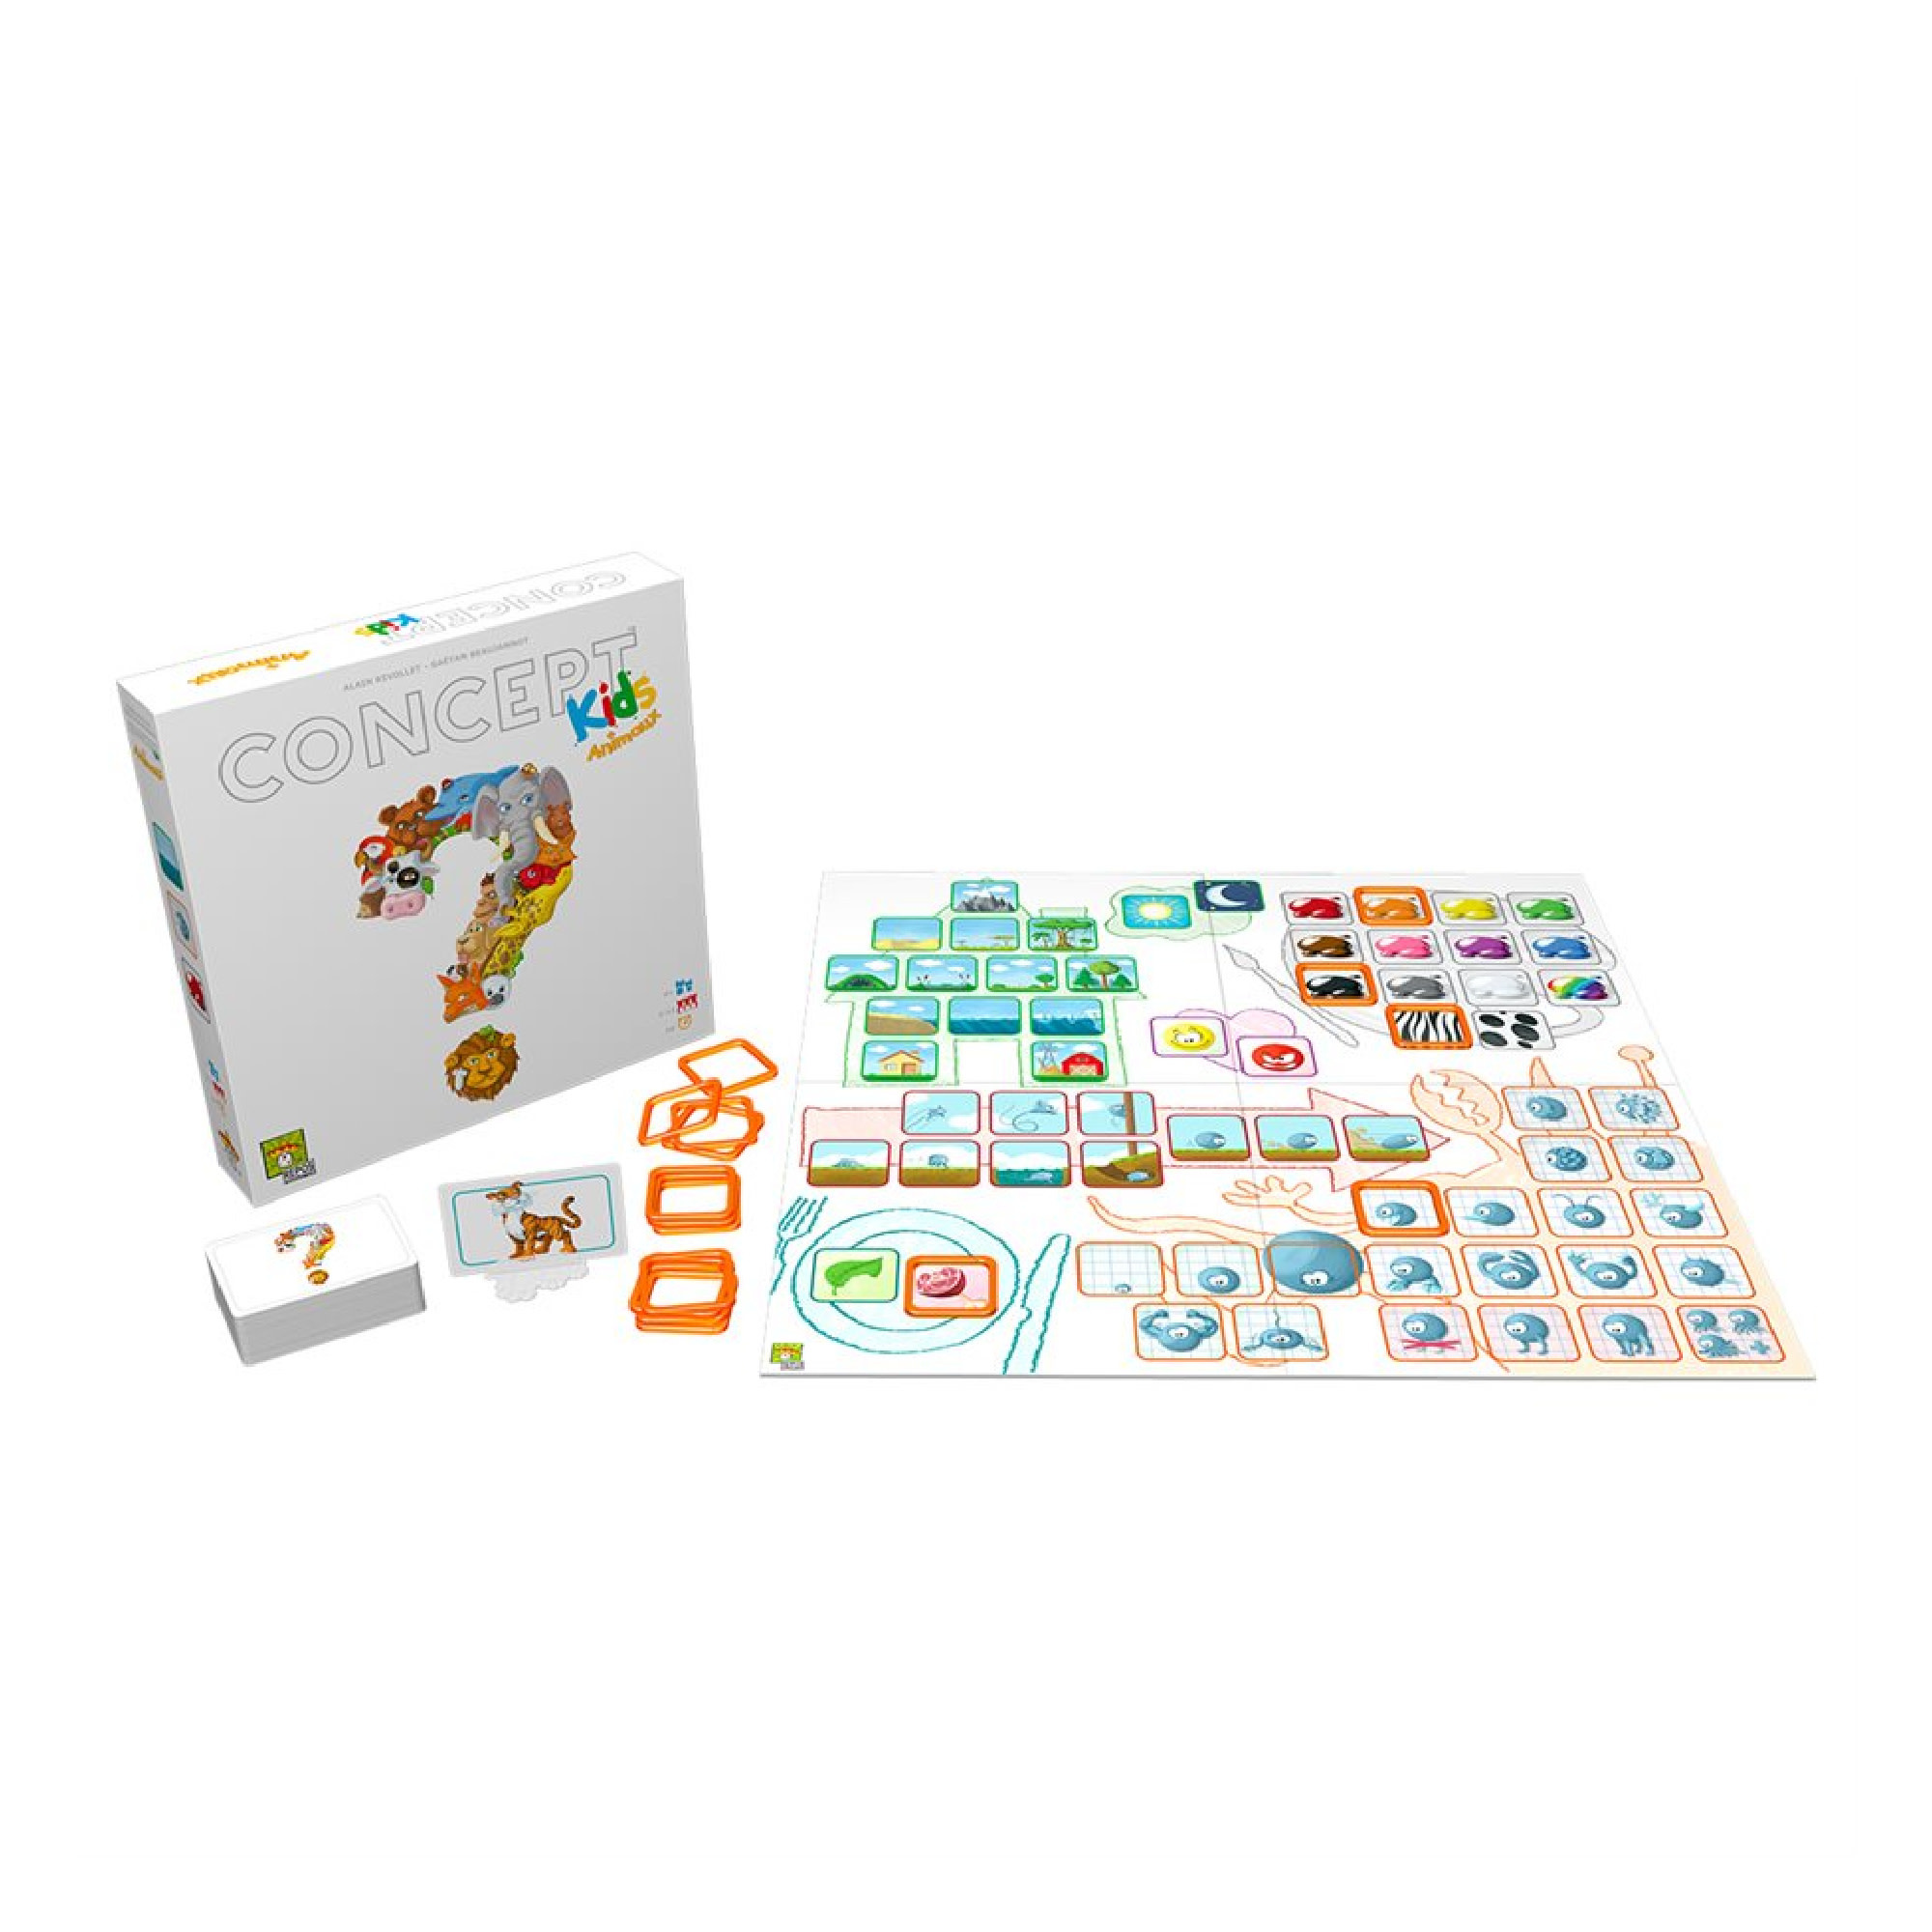 Repos Production Concept Kids animaux VF